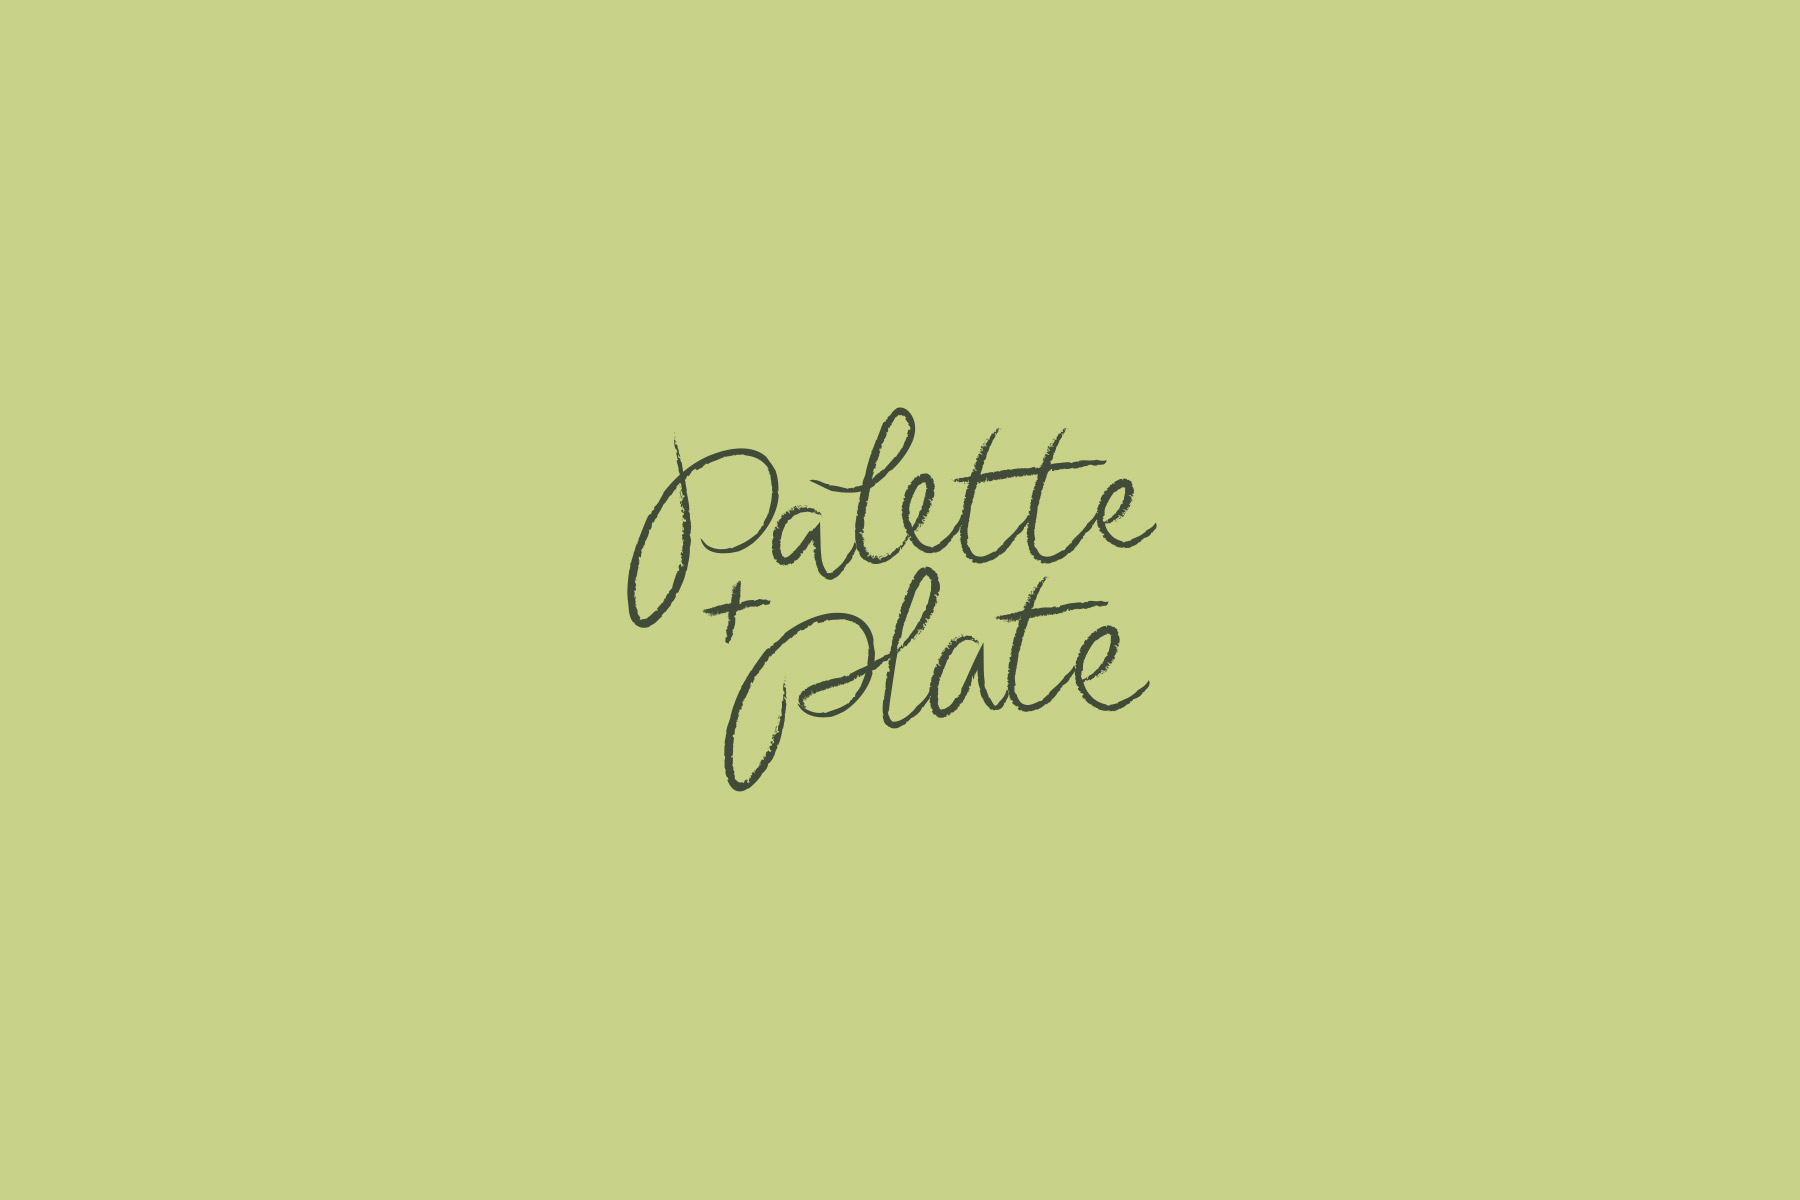 Empowering Palette and Plate logo